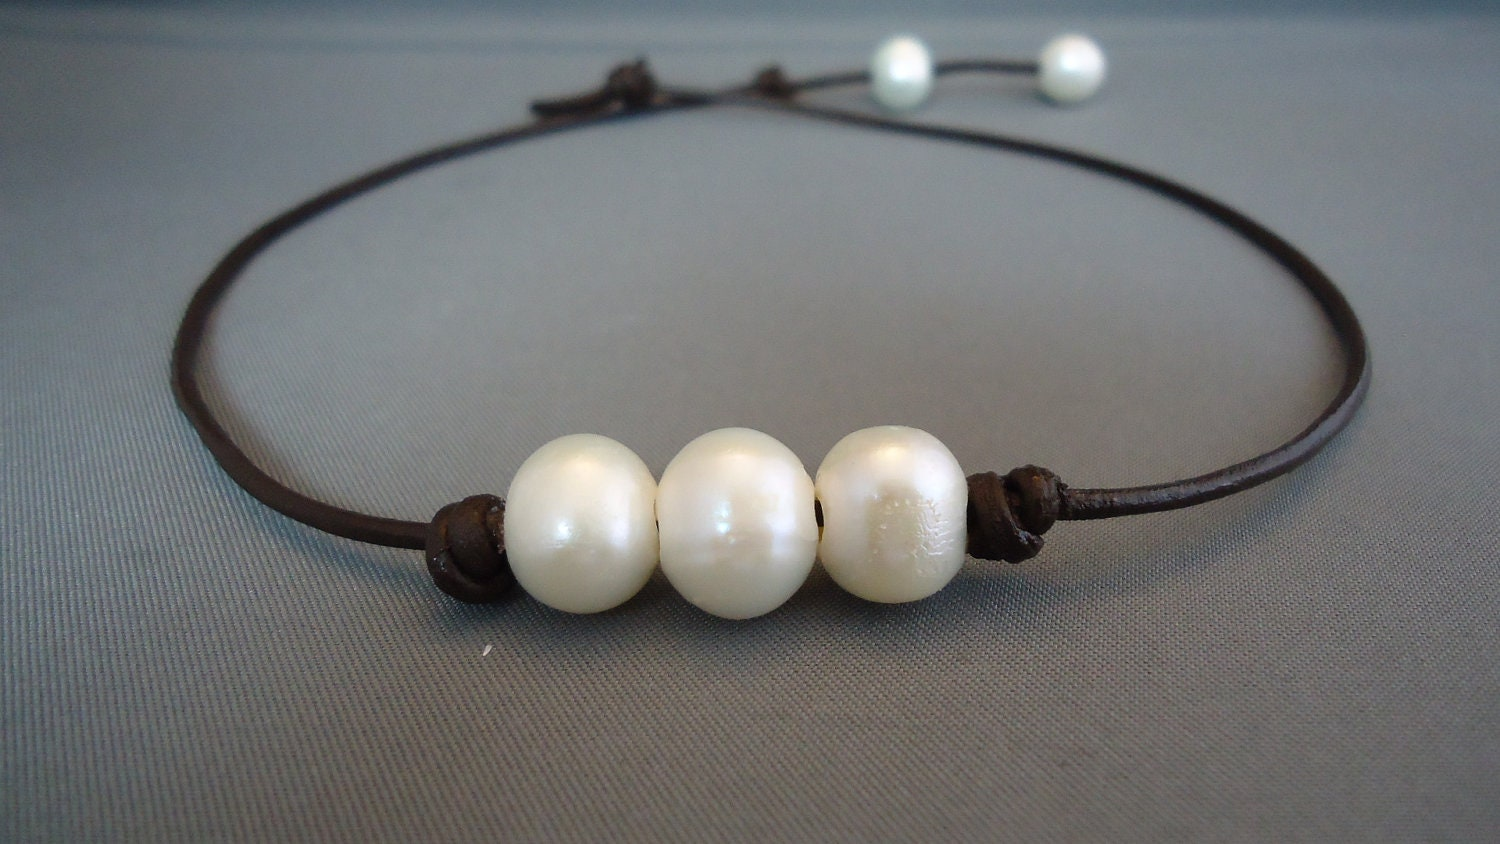 Three,wishes,pearl,leather,necklace,jewelry,leather_pearl,leather_necklace,